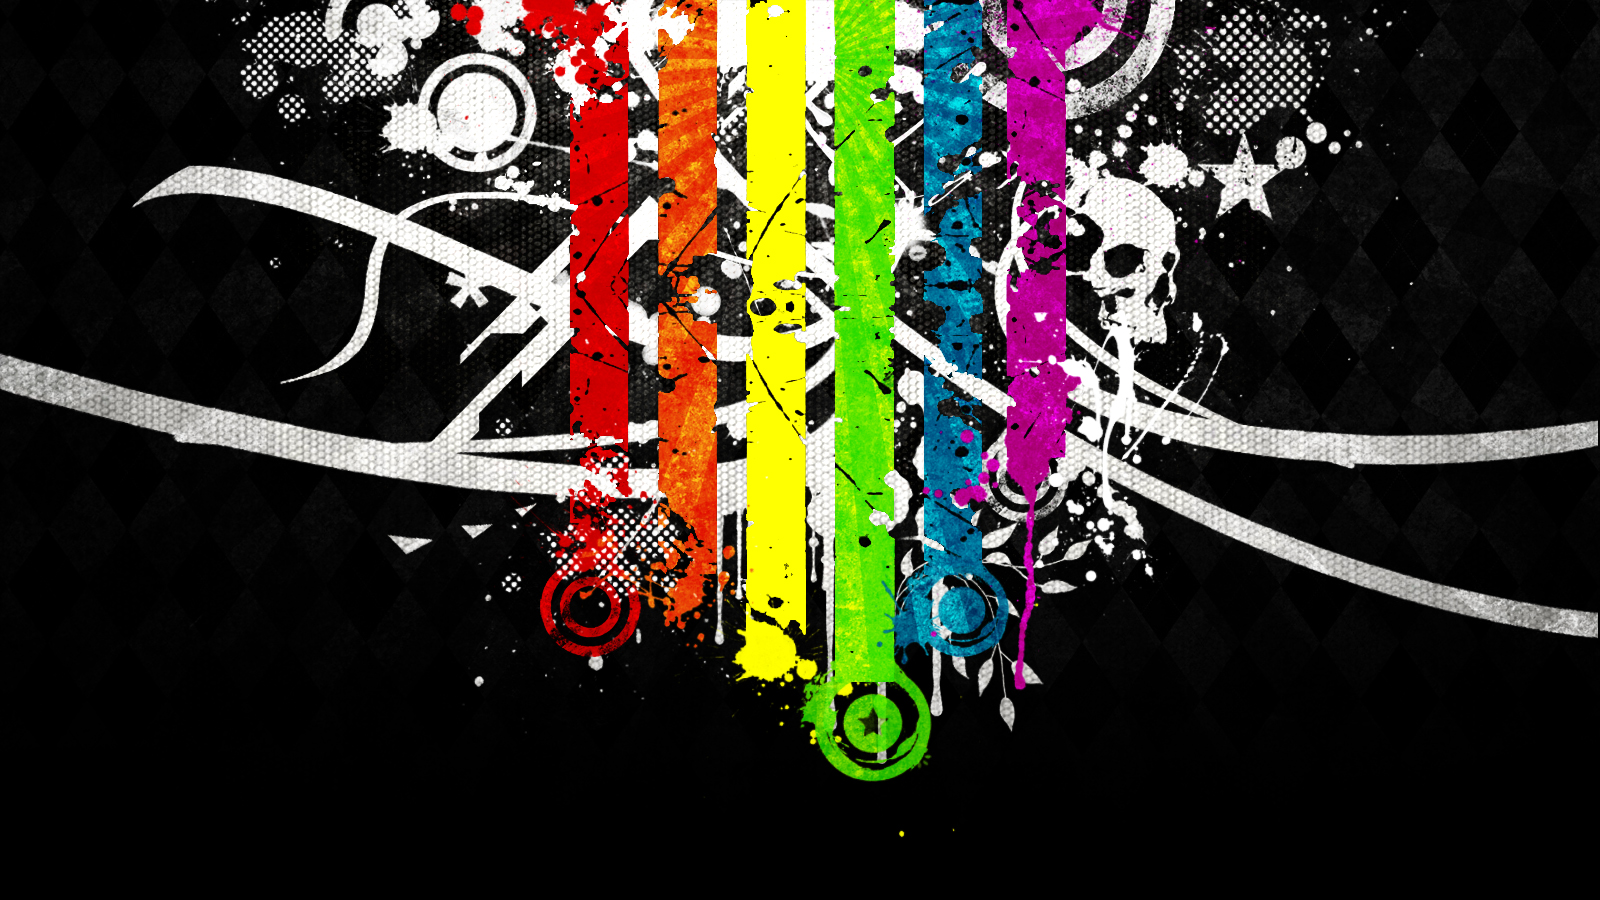 a_colourful_tragedy_by_reaperxxiv-d5899gl